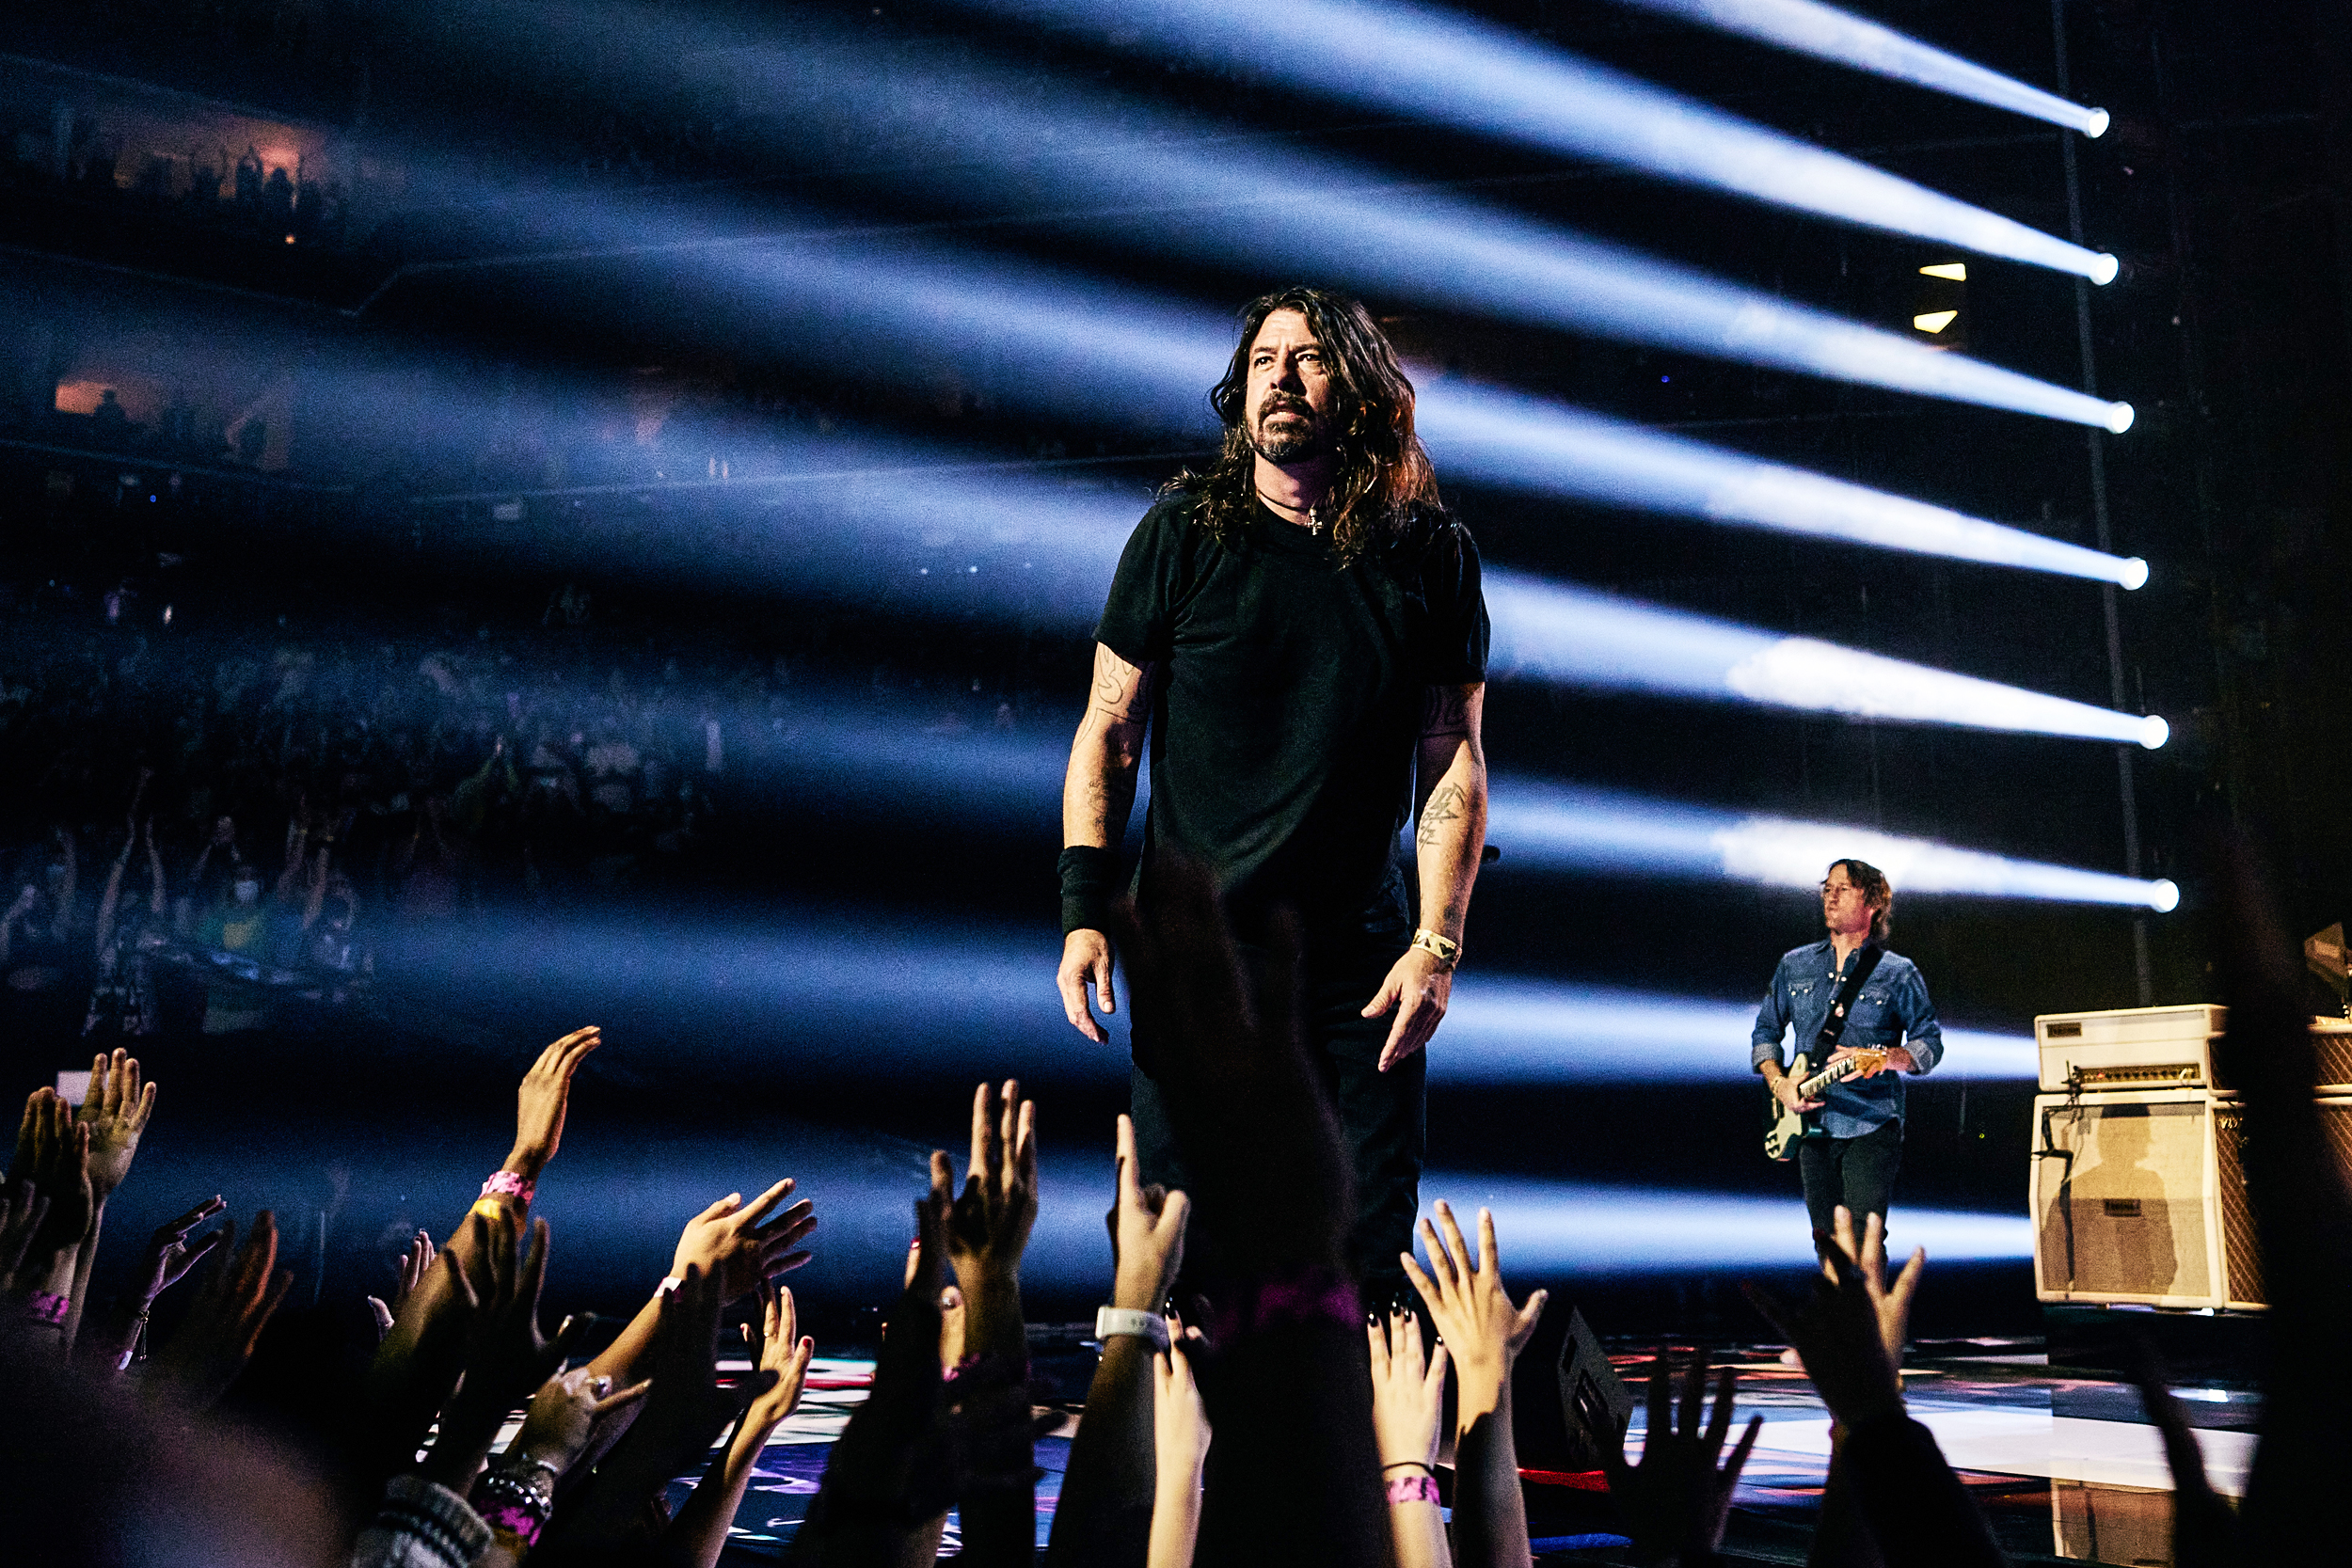 Dave Grohl suggests 'Nevermind' cover might change in wake of lawsuit